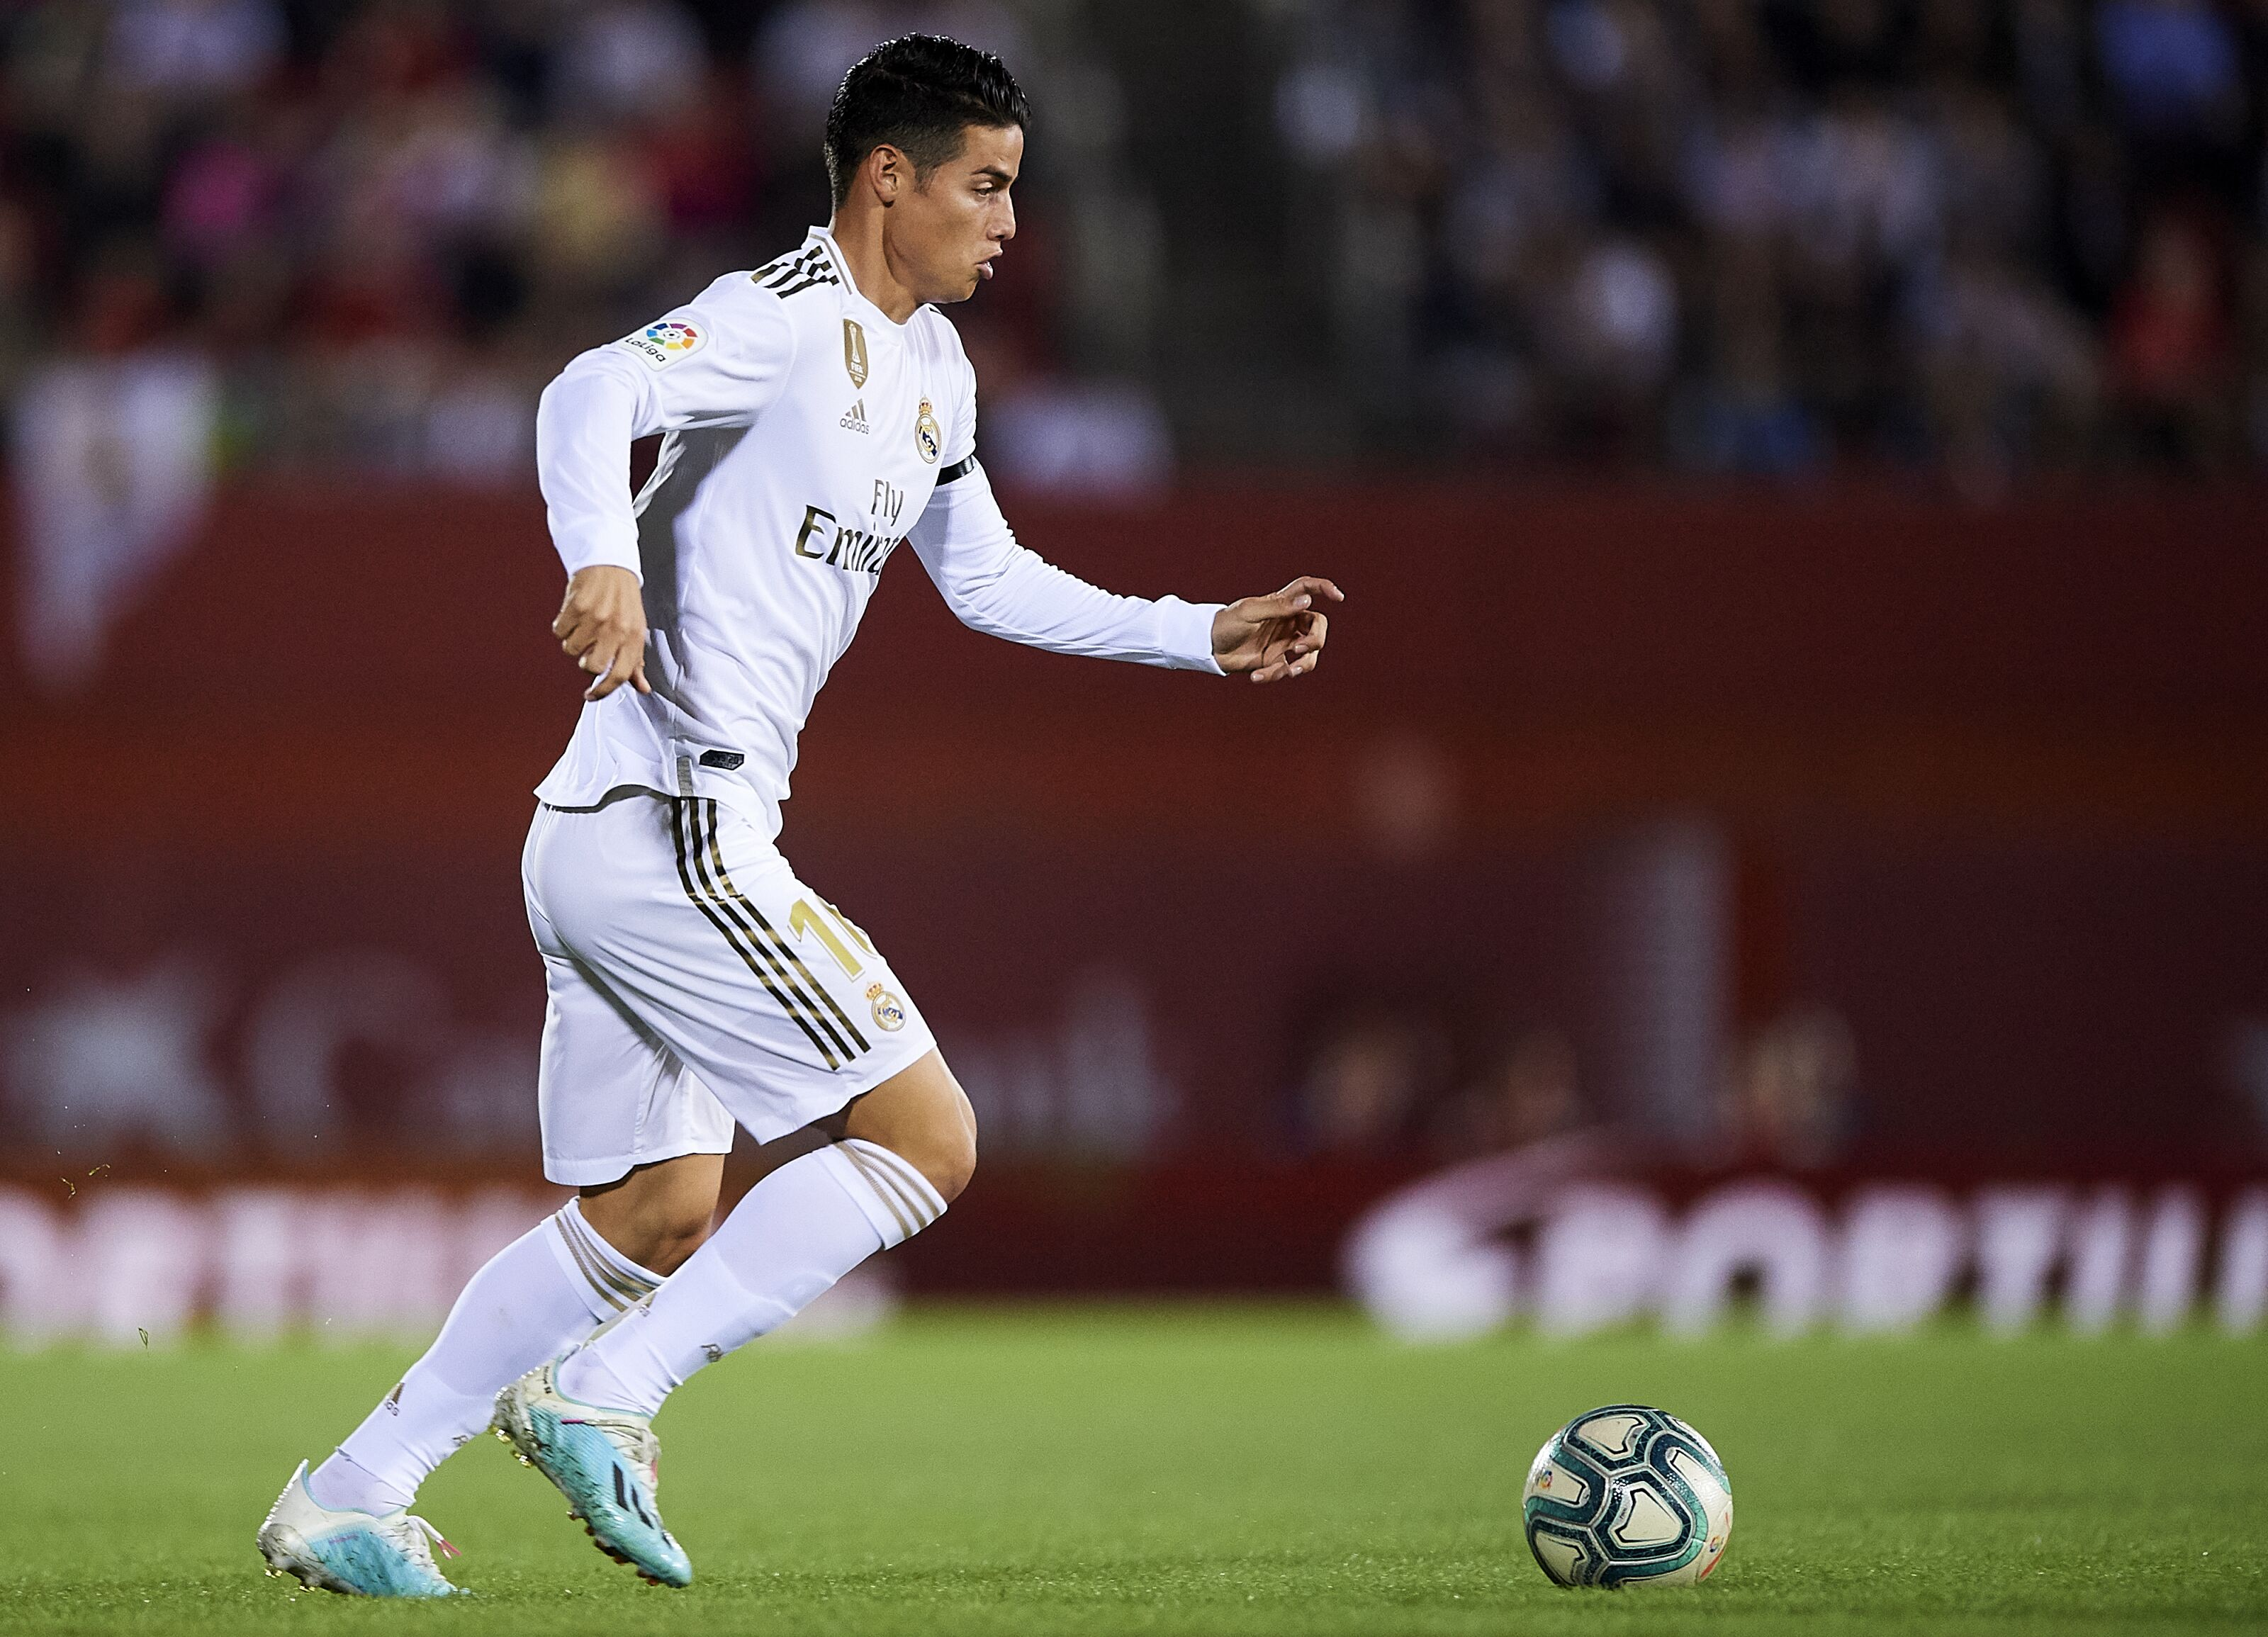 Real Madrid: How long will James Rodriguez be out with knee injury?